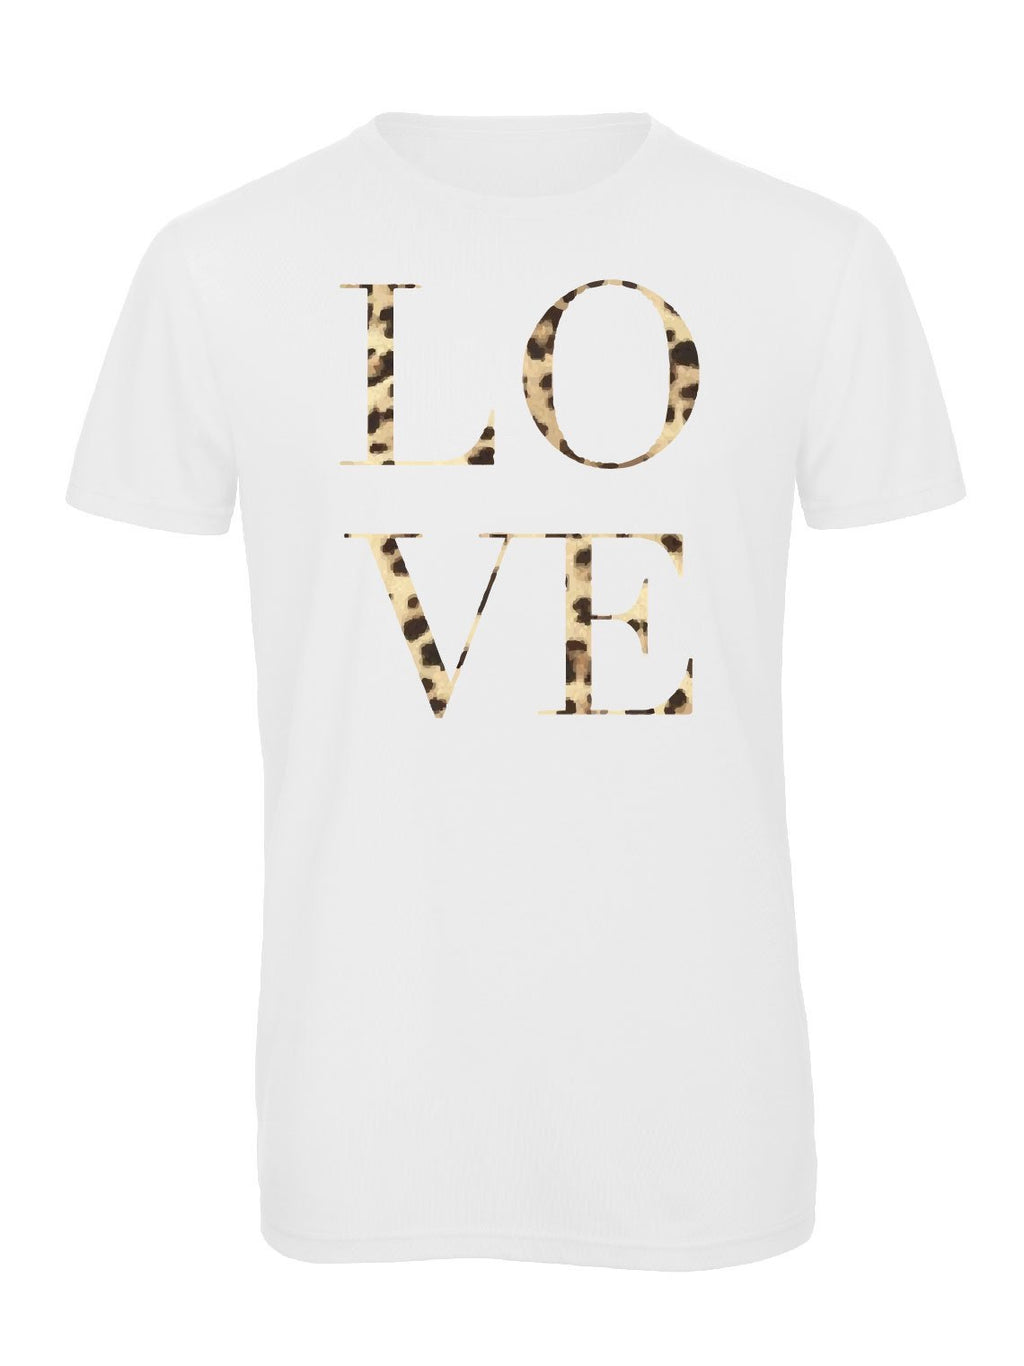 Leopard Love Crew Neck - Available in Black & White Tees